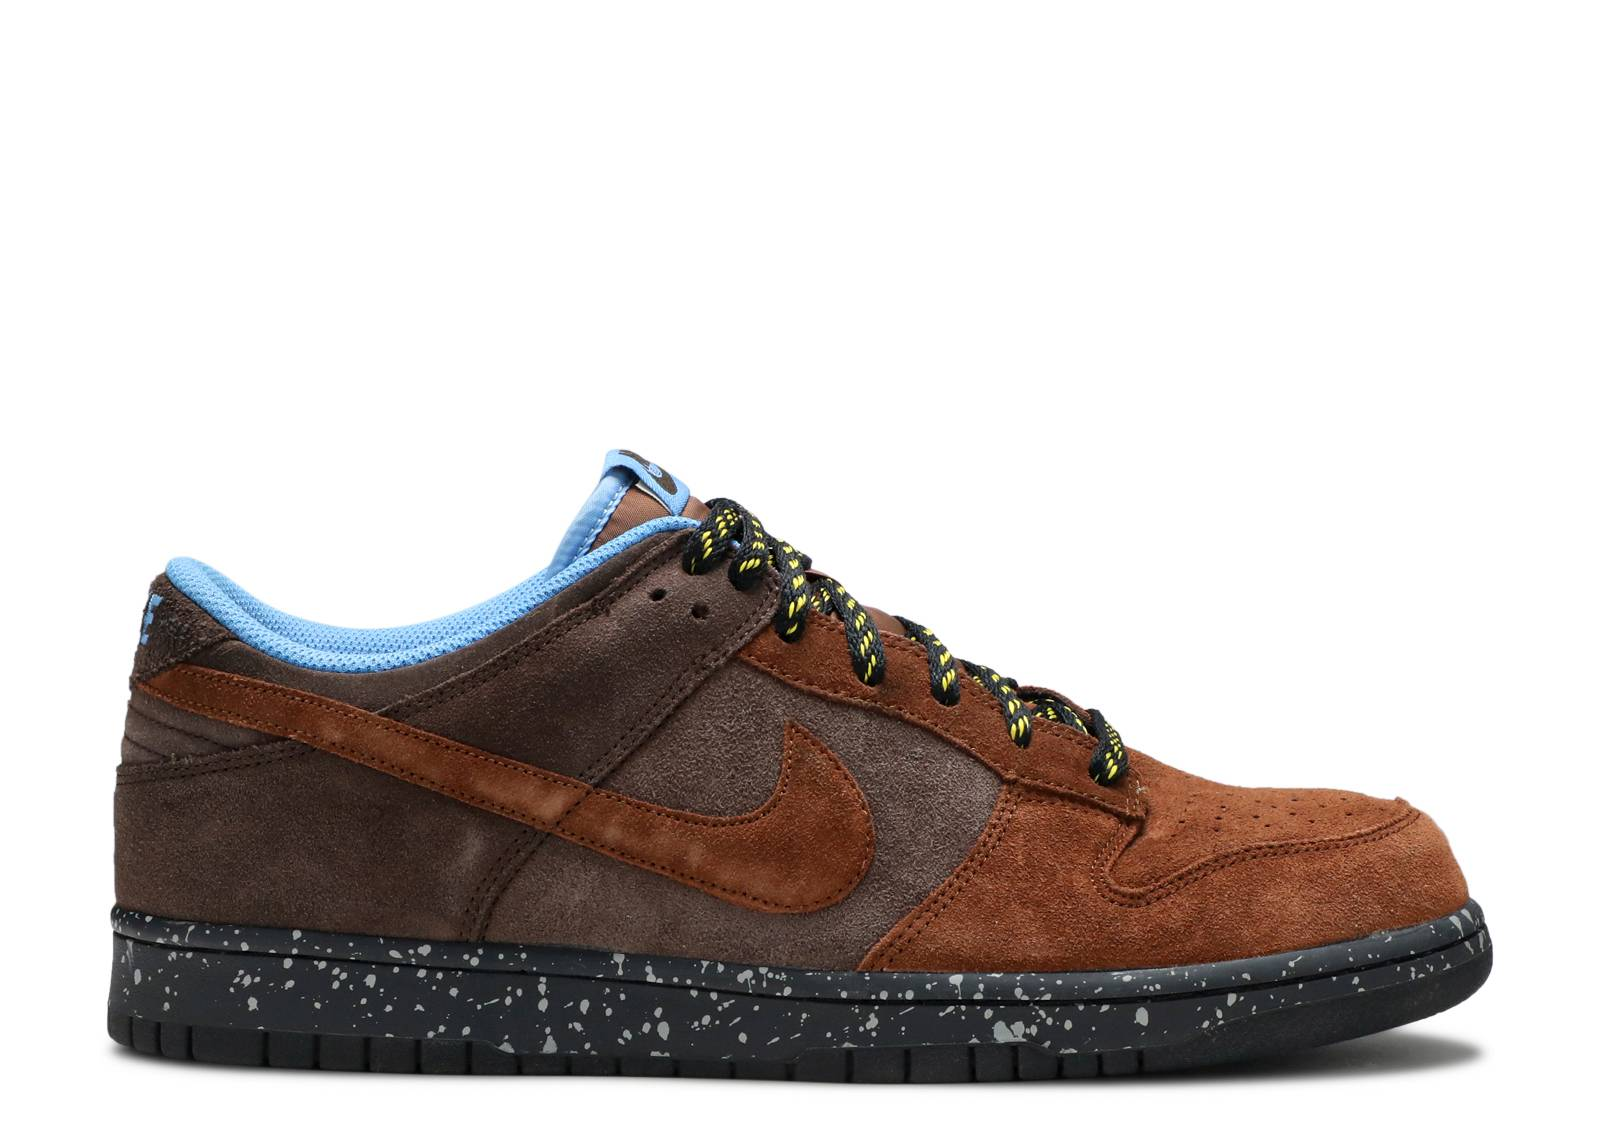 c30d989f07ba Dunk Low Cl - Nike - 304714 228 - baroque brown rustic-anthracite ...